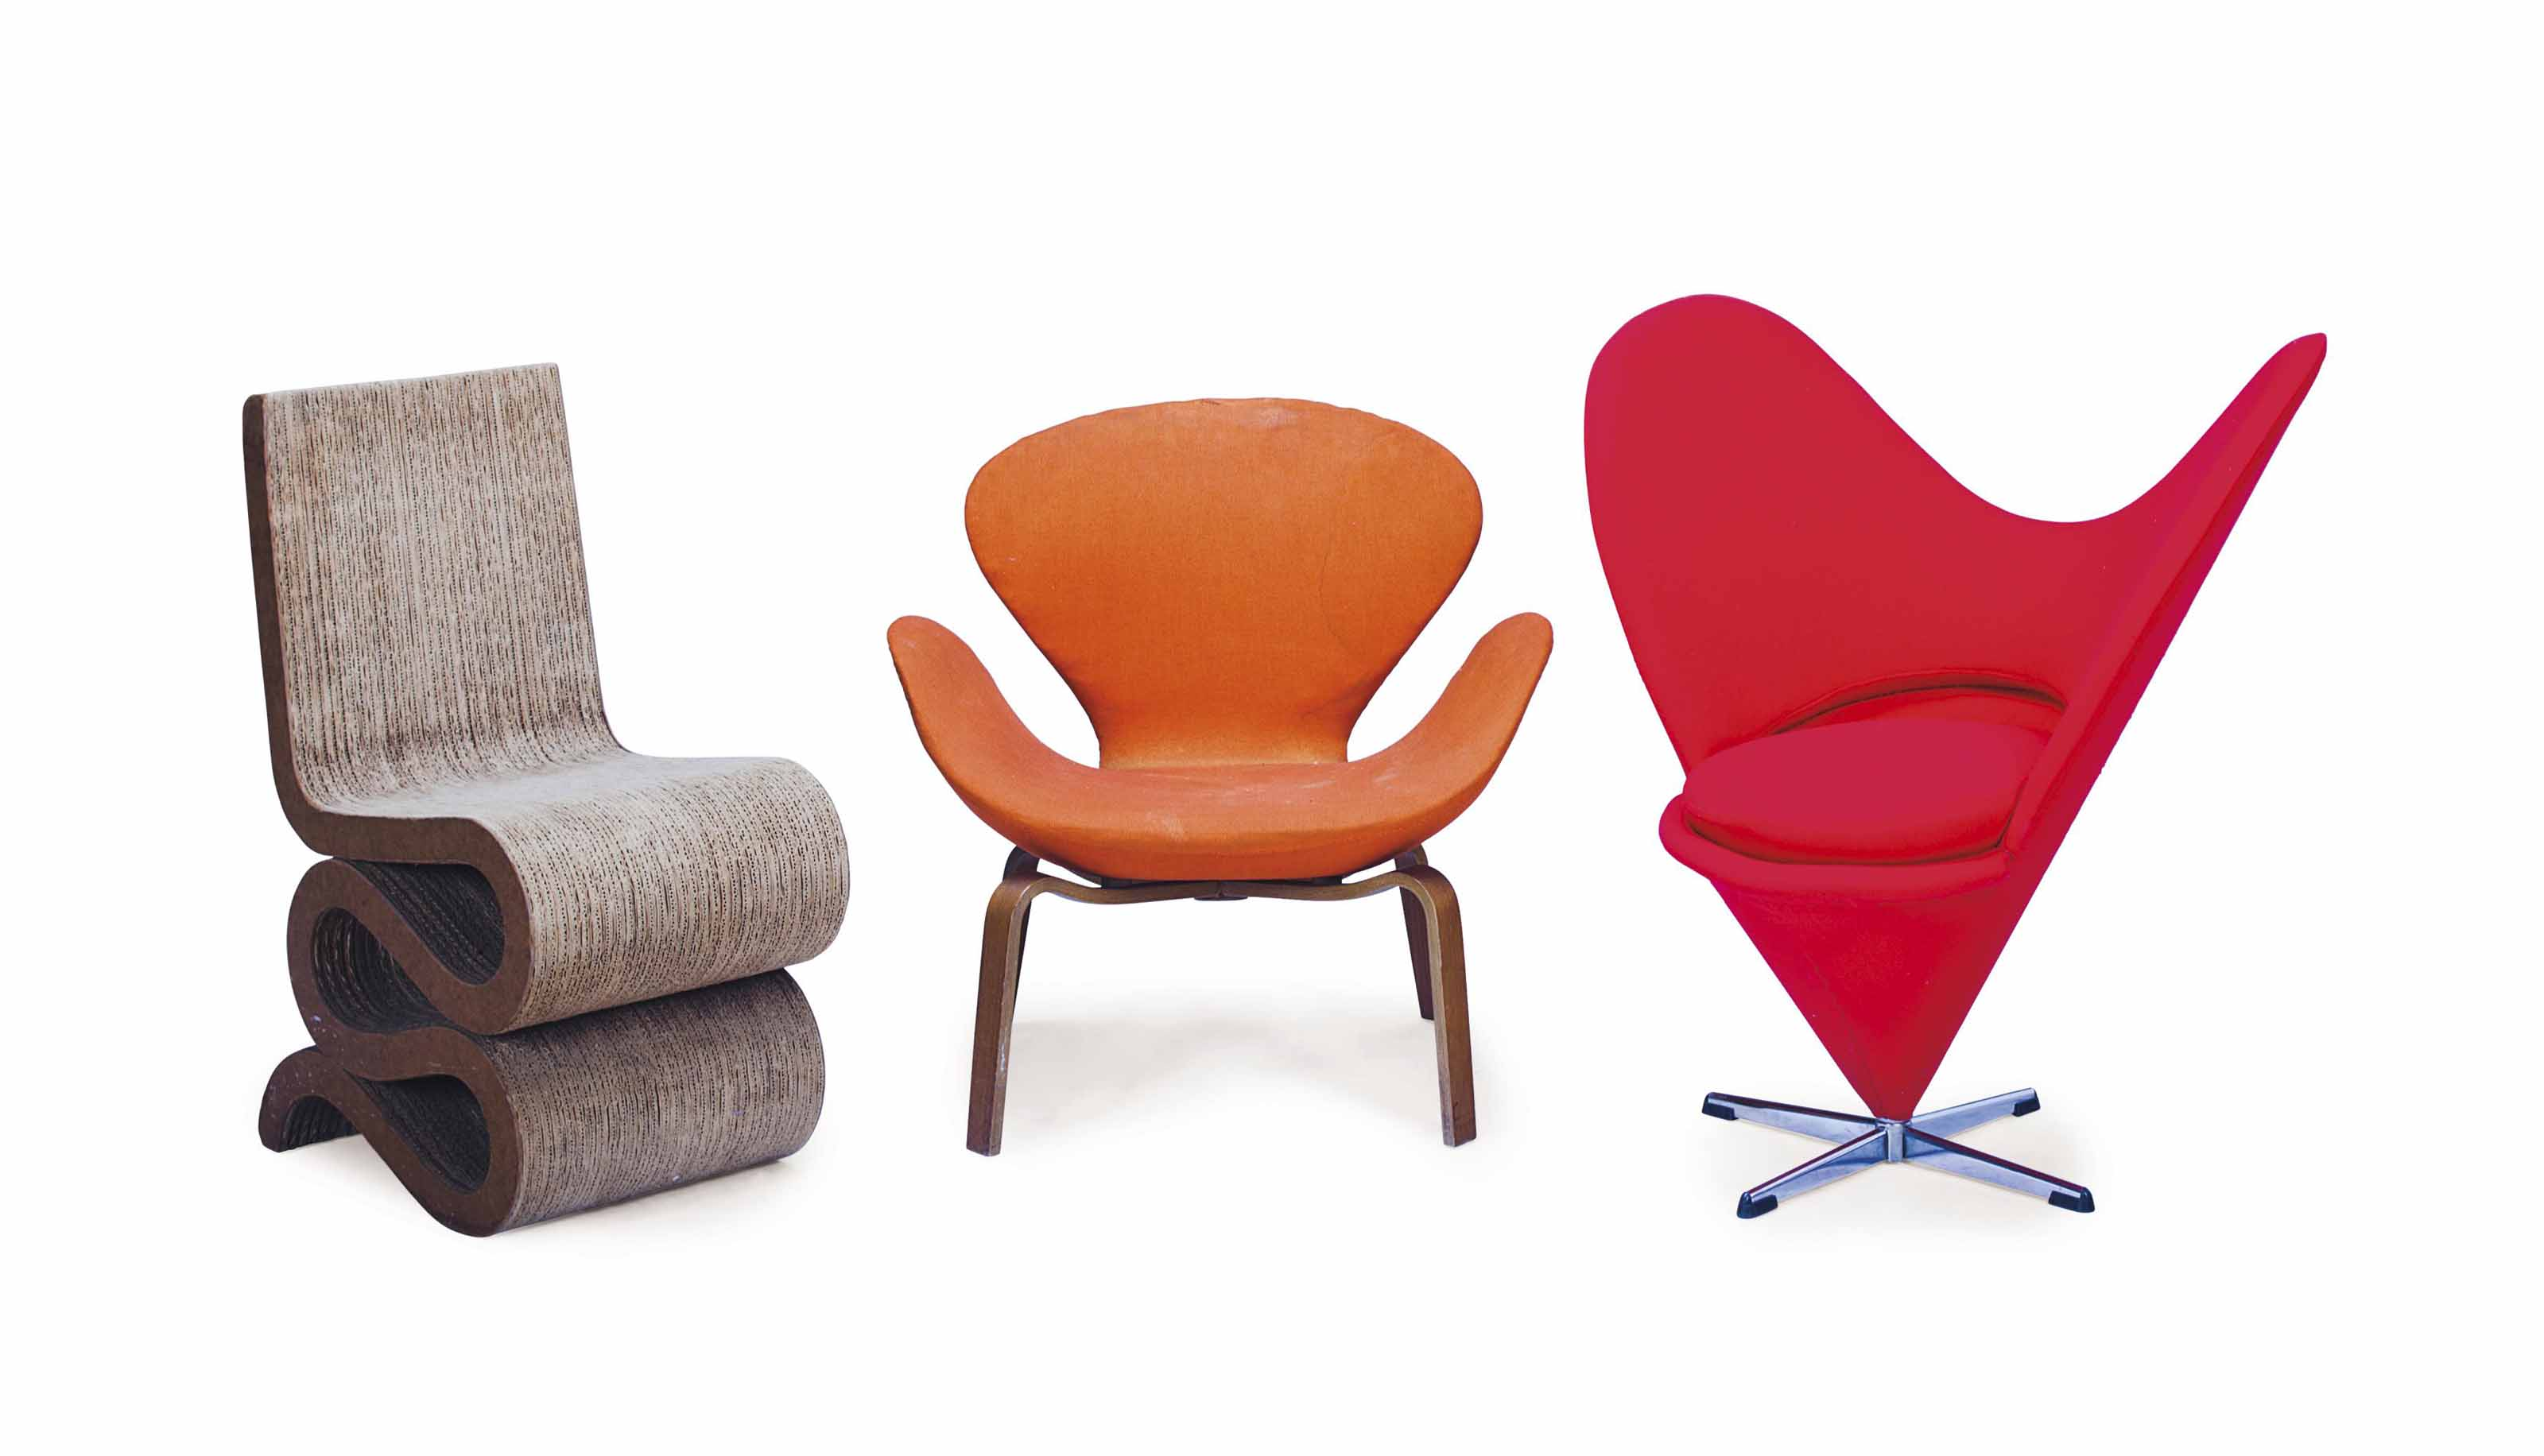 A RED UPHOLSTERED 'HEART' LOUNGE CHAIR, AND A CORRUGATED CARDBOARD 'WIGGLE' CHAIR,